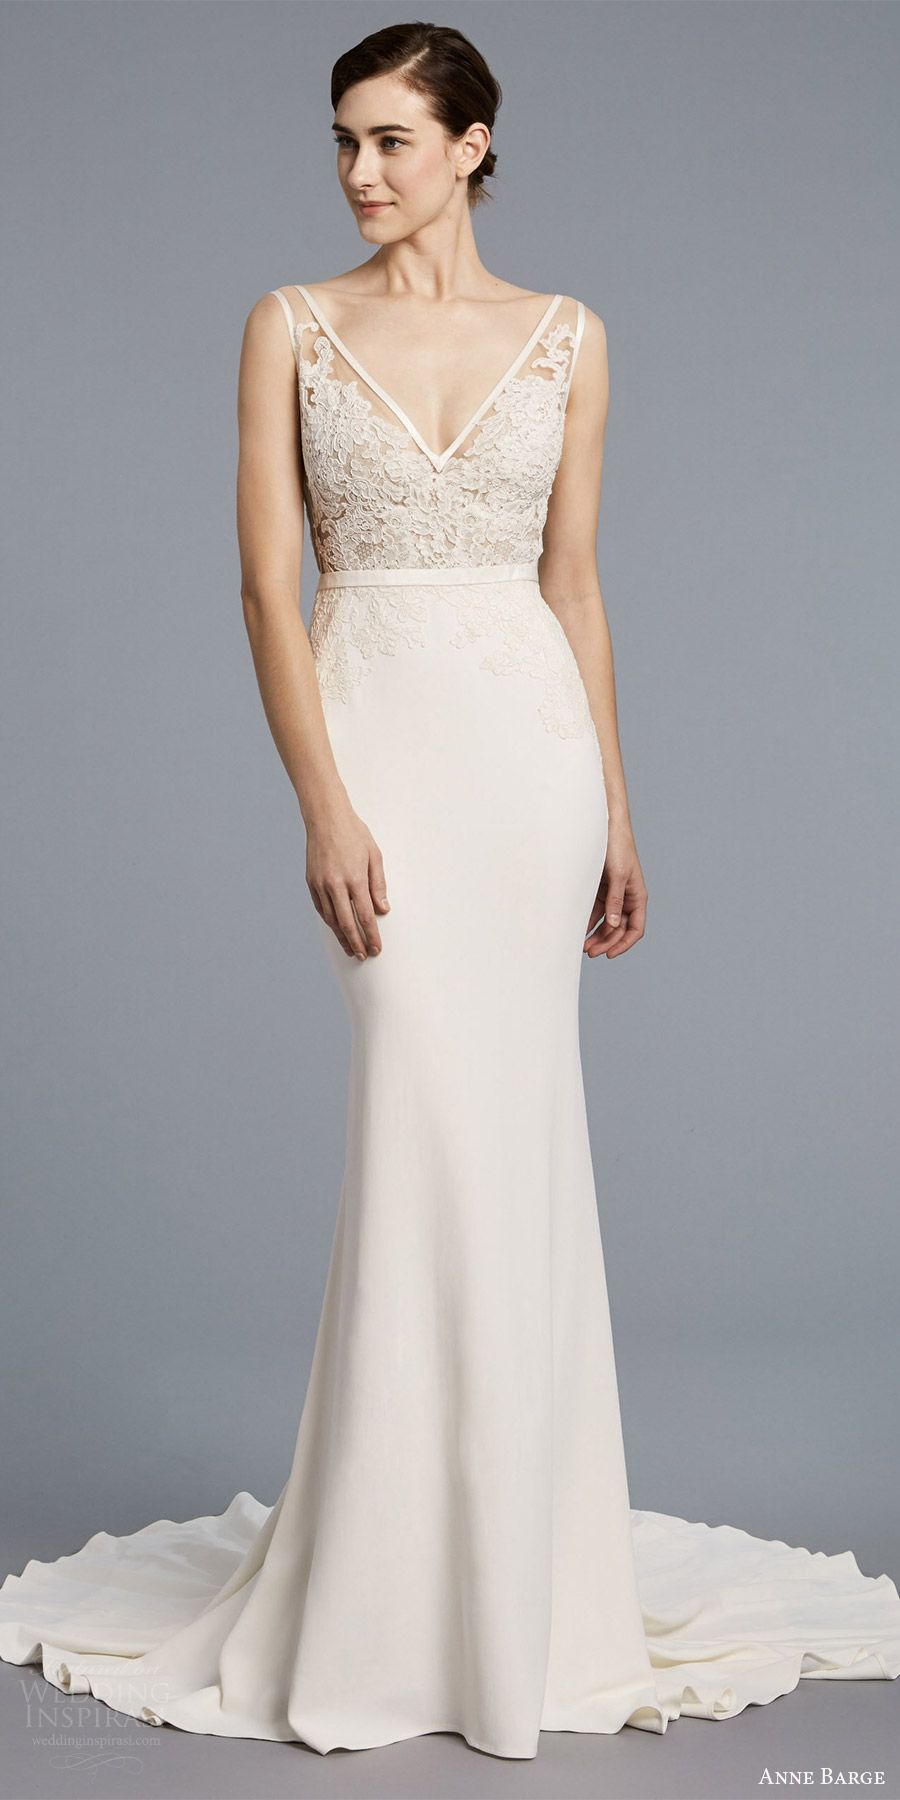 c672e836fc anne barge spring 2018 bridal sleeveless illusion straps v neck sheer lace  bodice sheath wedding dress (angelica) mv -- Anne Barge Spring 2018 Wedding  ...